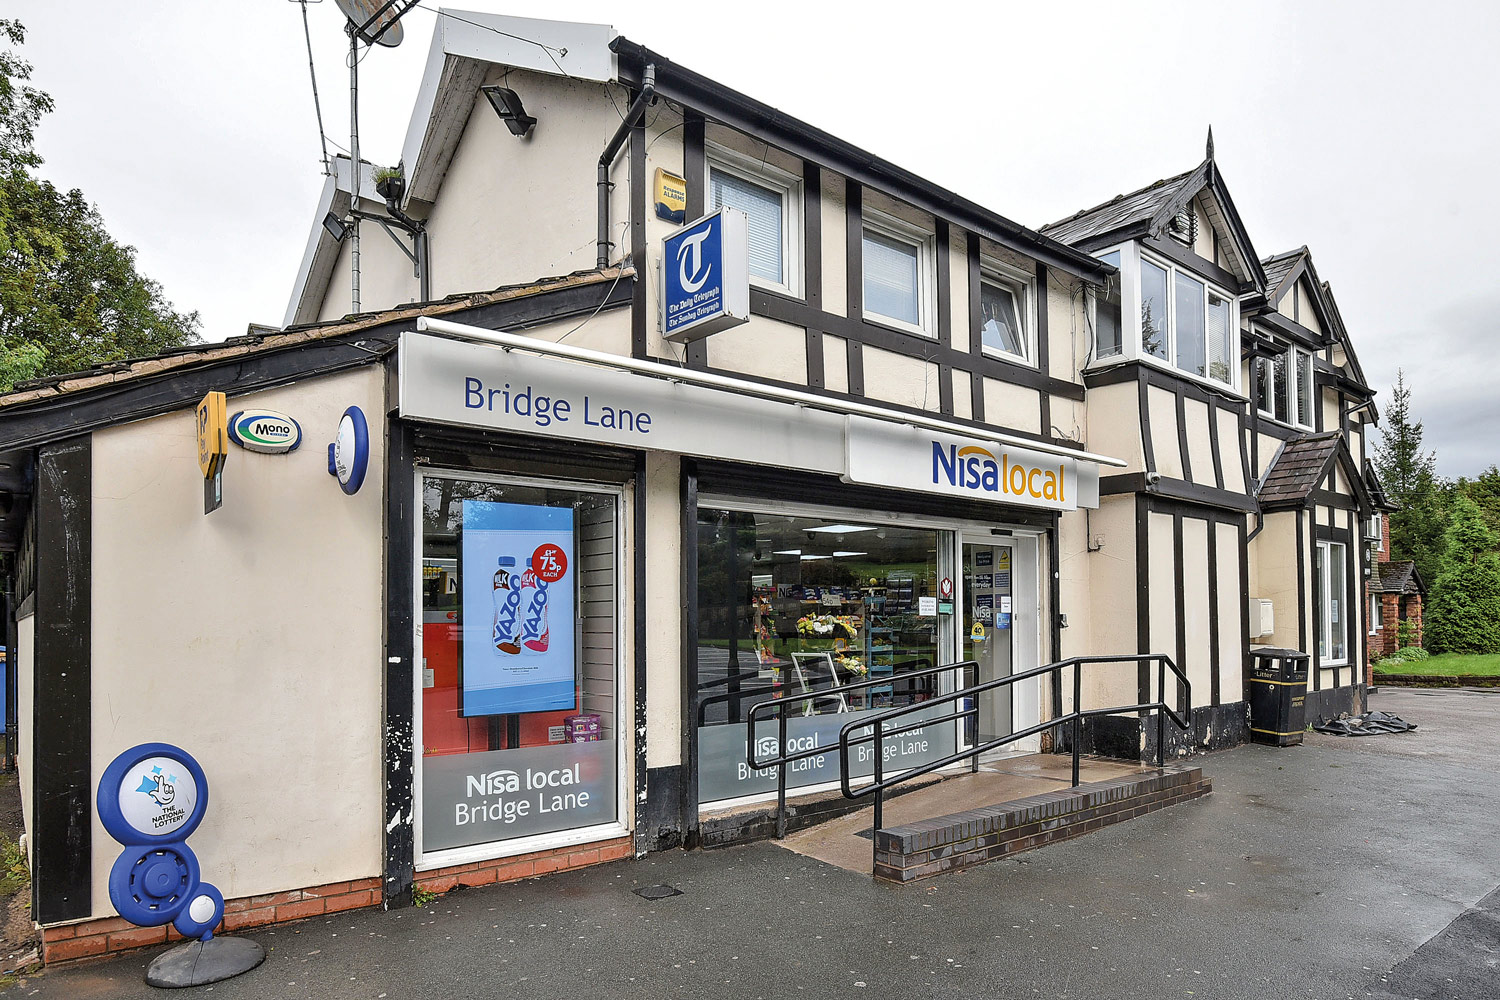 Nisa Local Bramhall Bridge Lane exterior